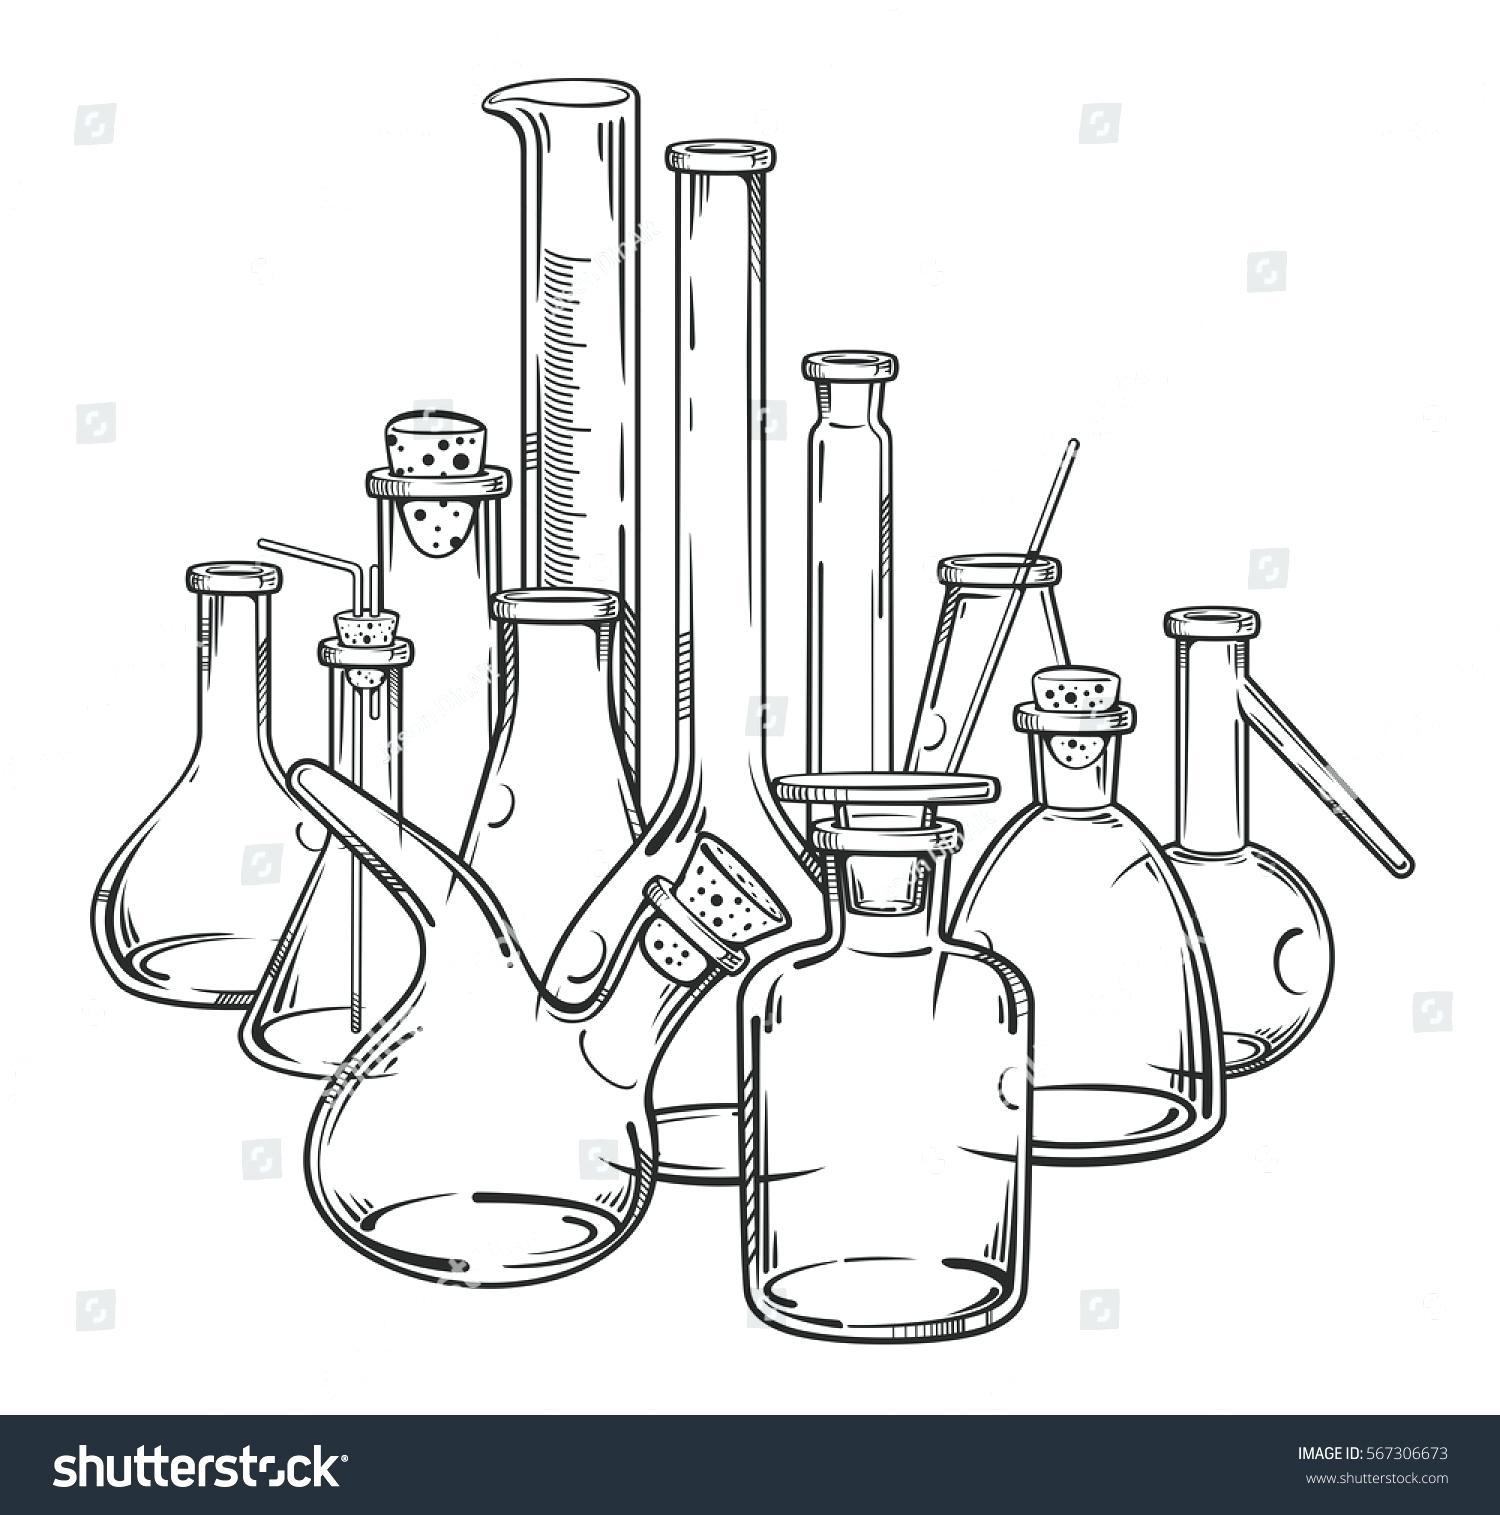 Chemistry Lab Drawing at GetDrawings.com | Free for personal use ...